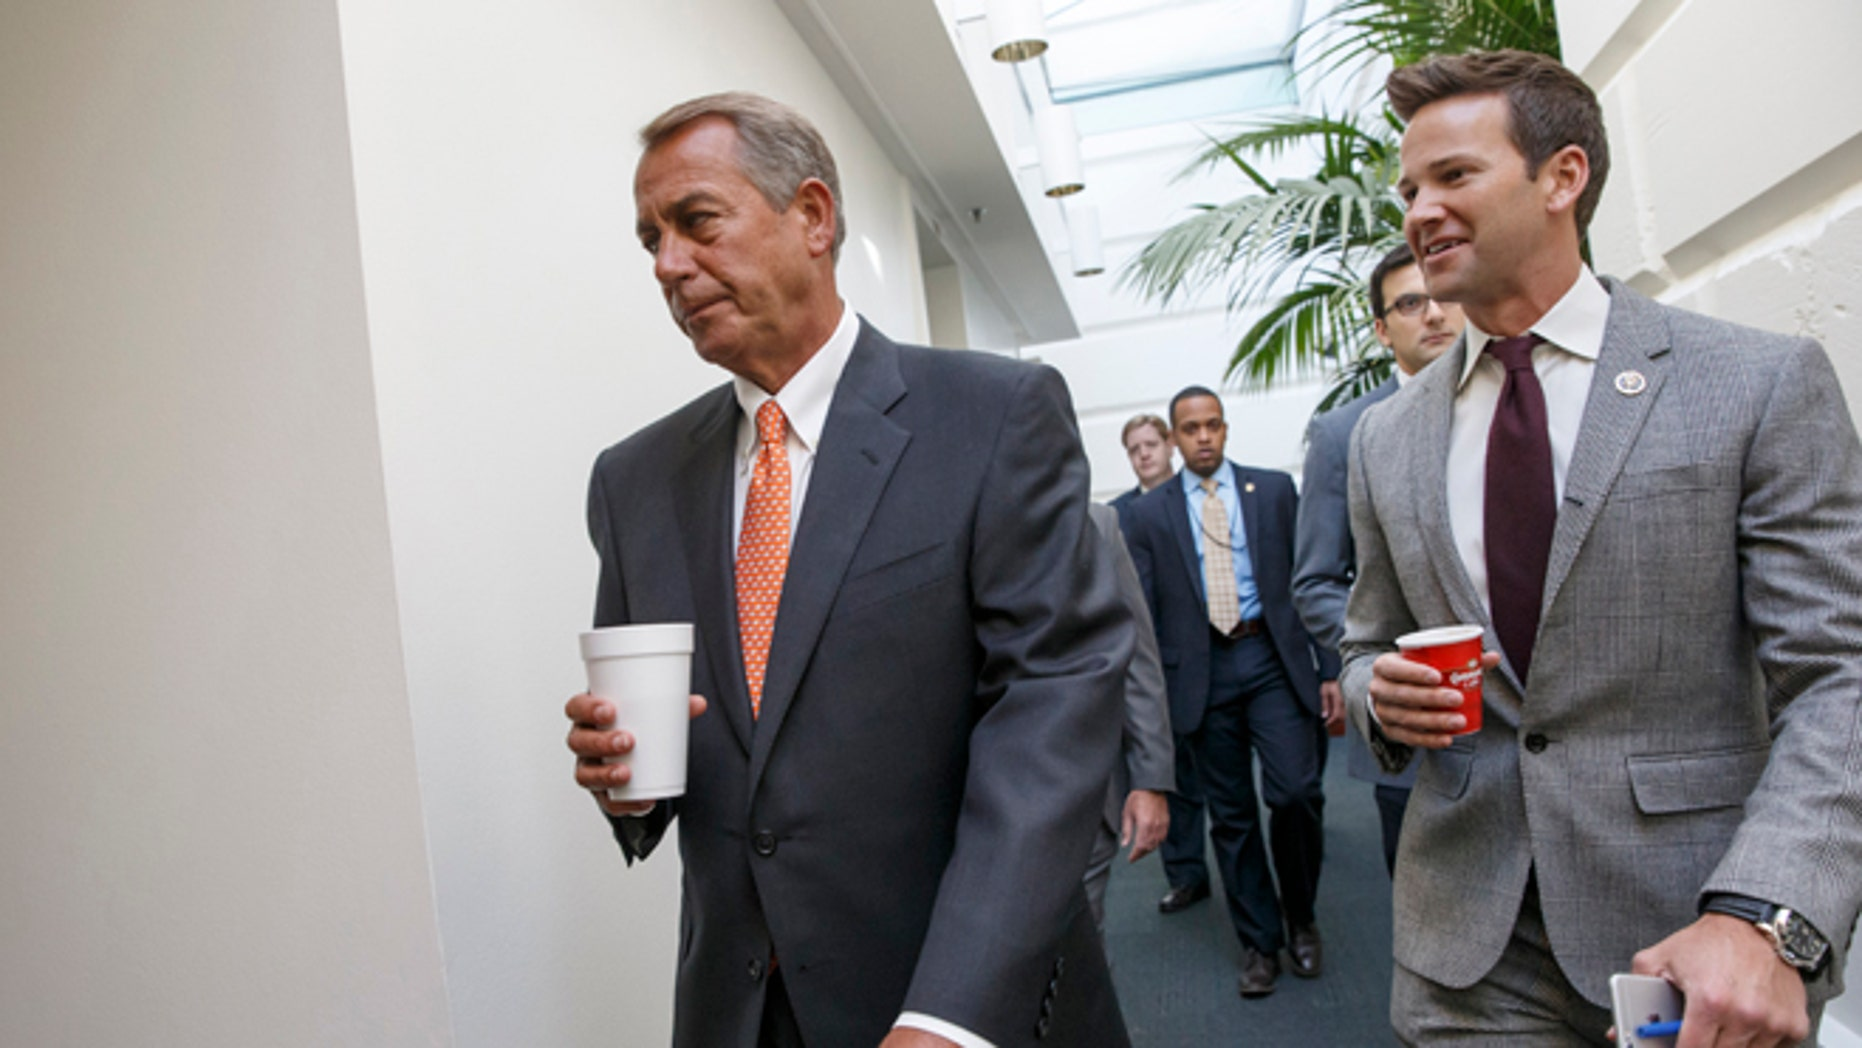 House Speaker John Boehner of Ohio walks with Rep. Aaron Schock, R-Ill., as House Republicans head to a closed-door meeting on thwarting President Barack Obama's executive actions on immigration by blocking the funding for the Department of Homeland Security. Friday, Jan. 9, 2015, on Capitol Hill in Washington. Obama's directives in November gave temporary relief from deportation to about 4 million immigrants in the country illegally, along with permits allowing them to work legally in the U.S. His move infuriated Republicans after their midterm election victories, and they vowed to retaliate once they assumed full control of Congress this week. (AP Photo/J. Scott Applewhite)